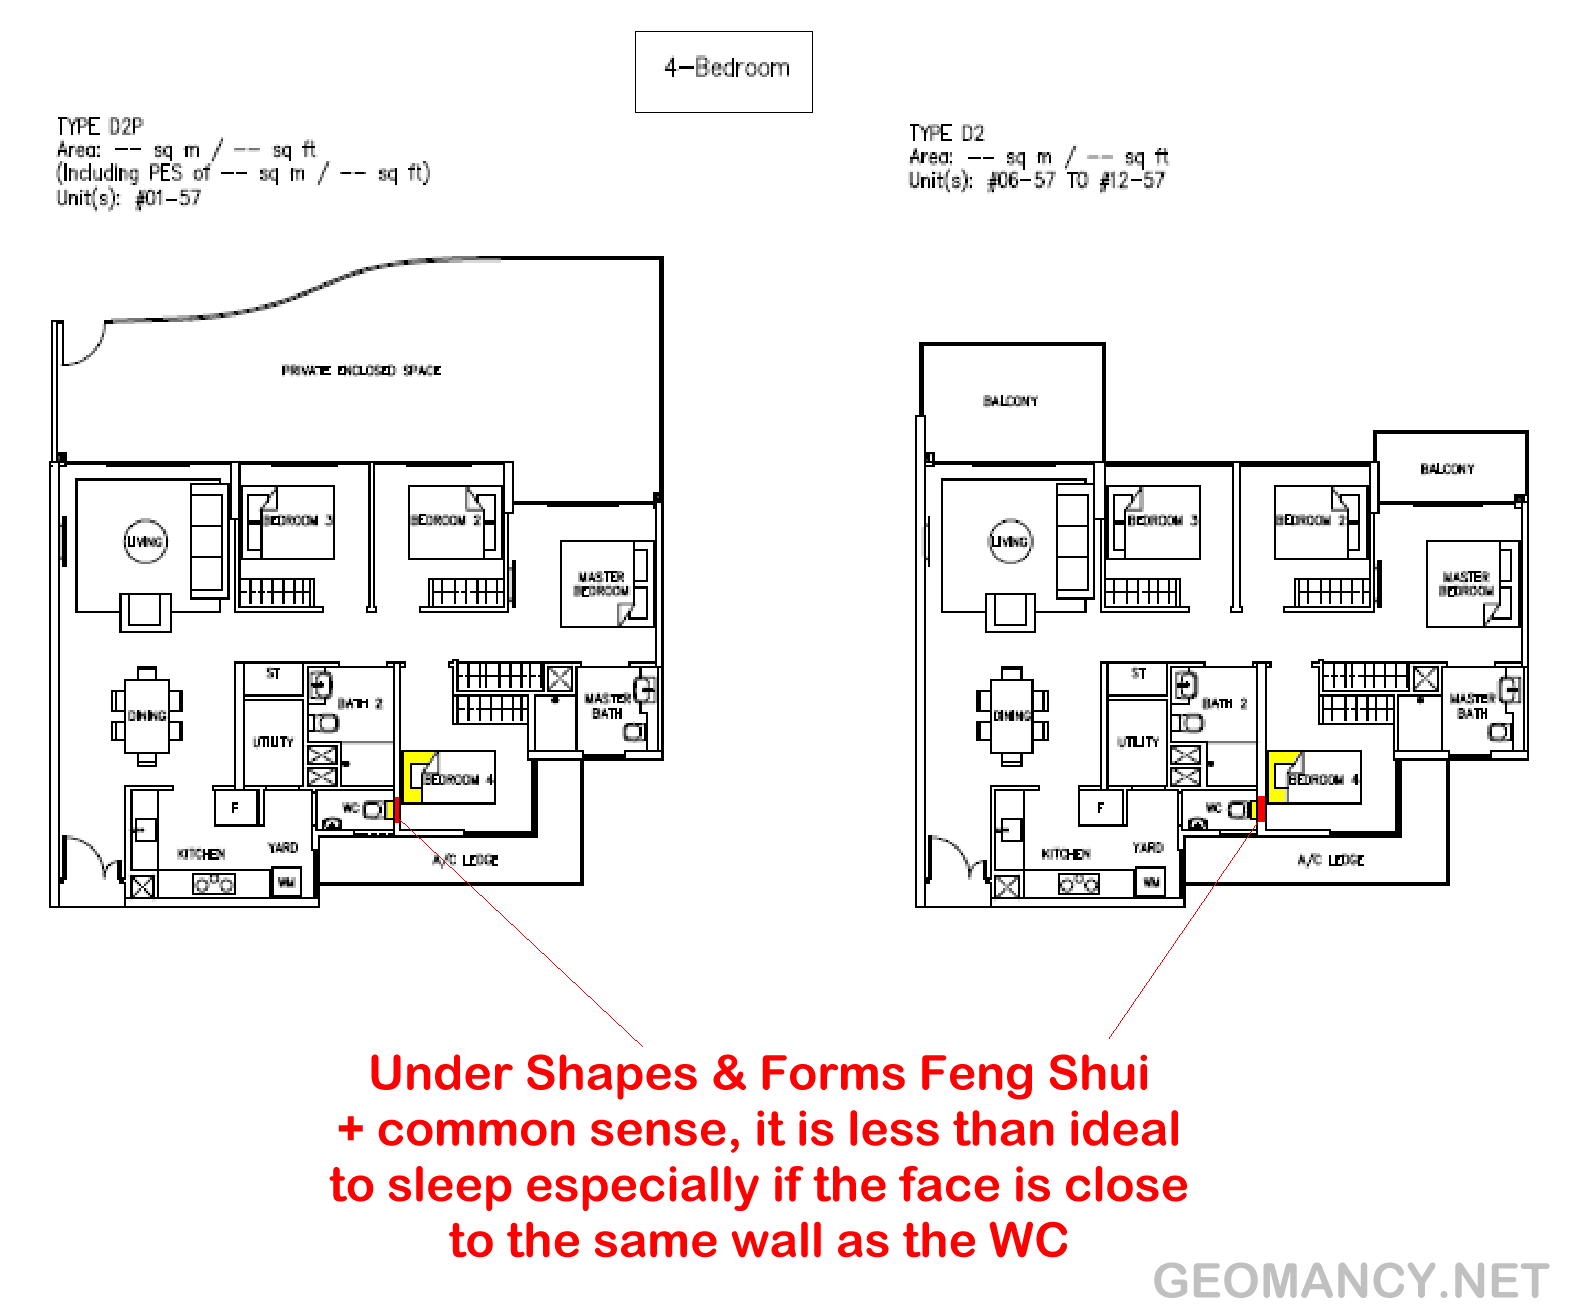 waterfront isle feng shui tips guidelines fengshui geomancy net. Black Bedroom Furniture Sets. Home Design Ideas